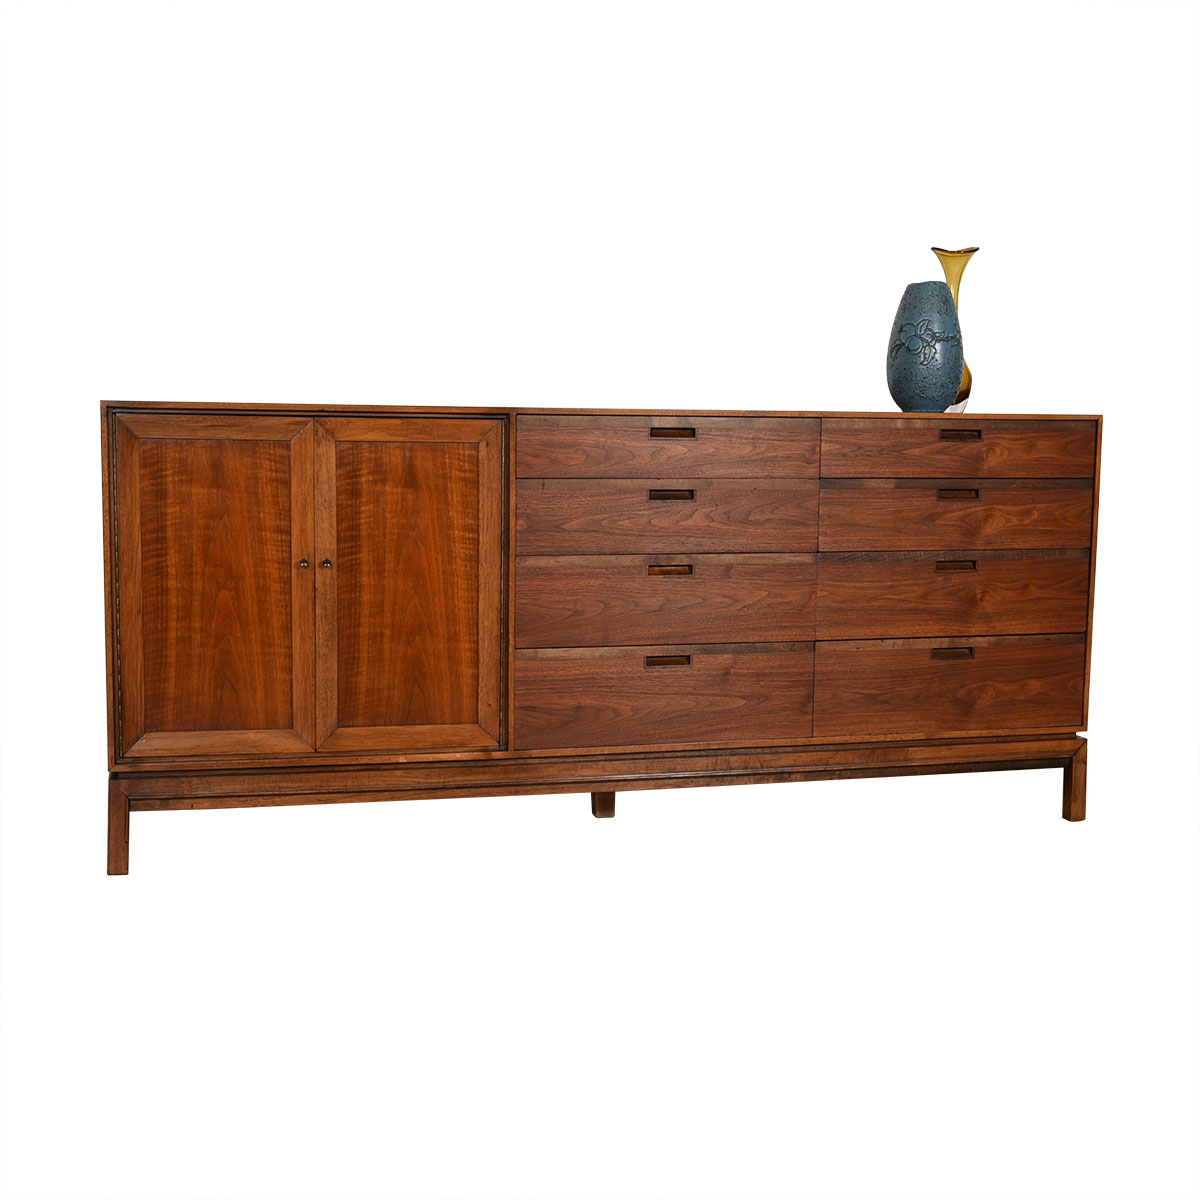 Thin-Edged 71″ Mid Century Walnut Dresser / Sideboard